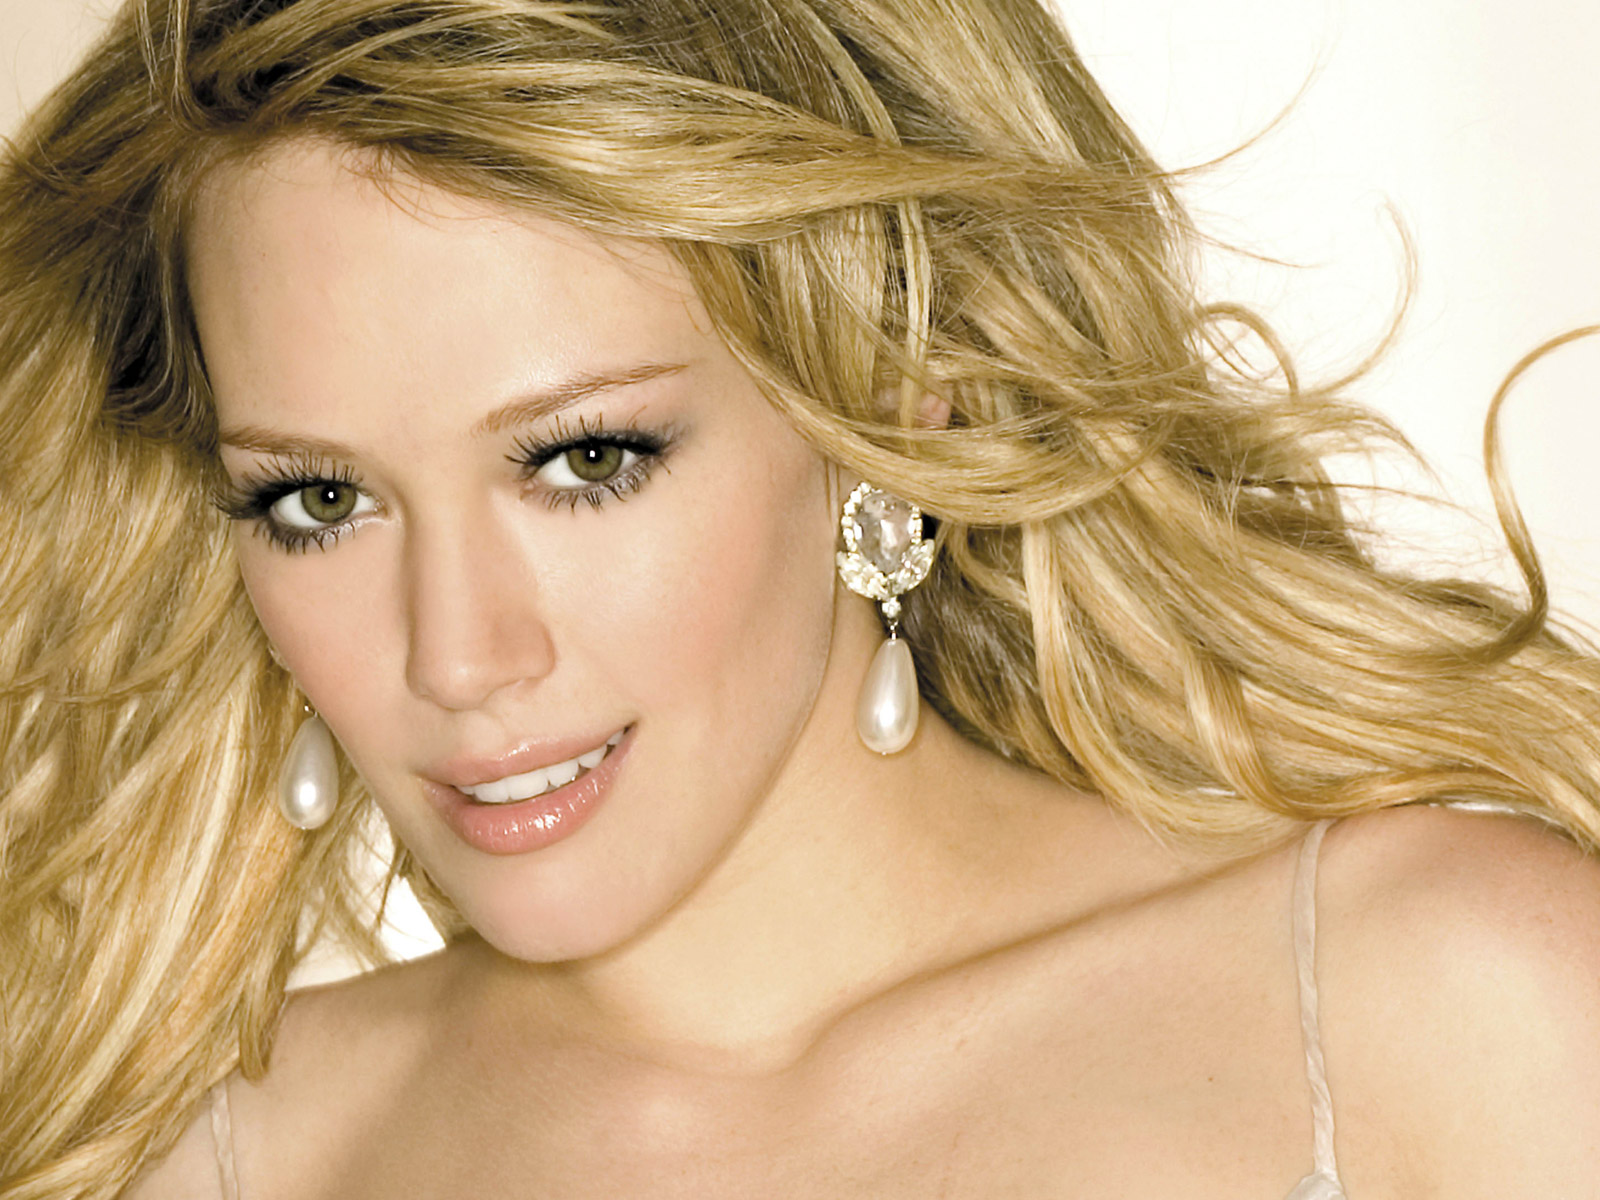 Hilary Duff images Hilary HD wallpaper and background photos (134930) Hilary Duff